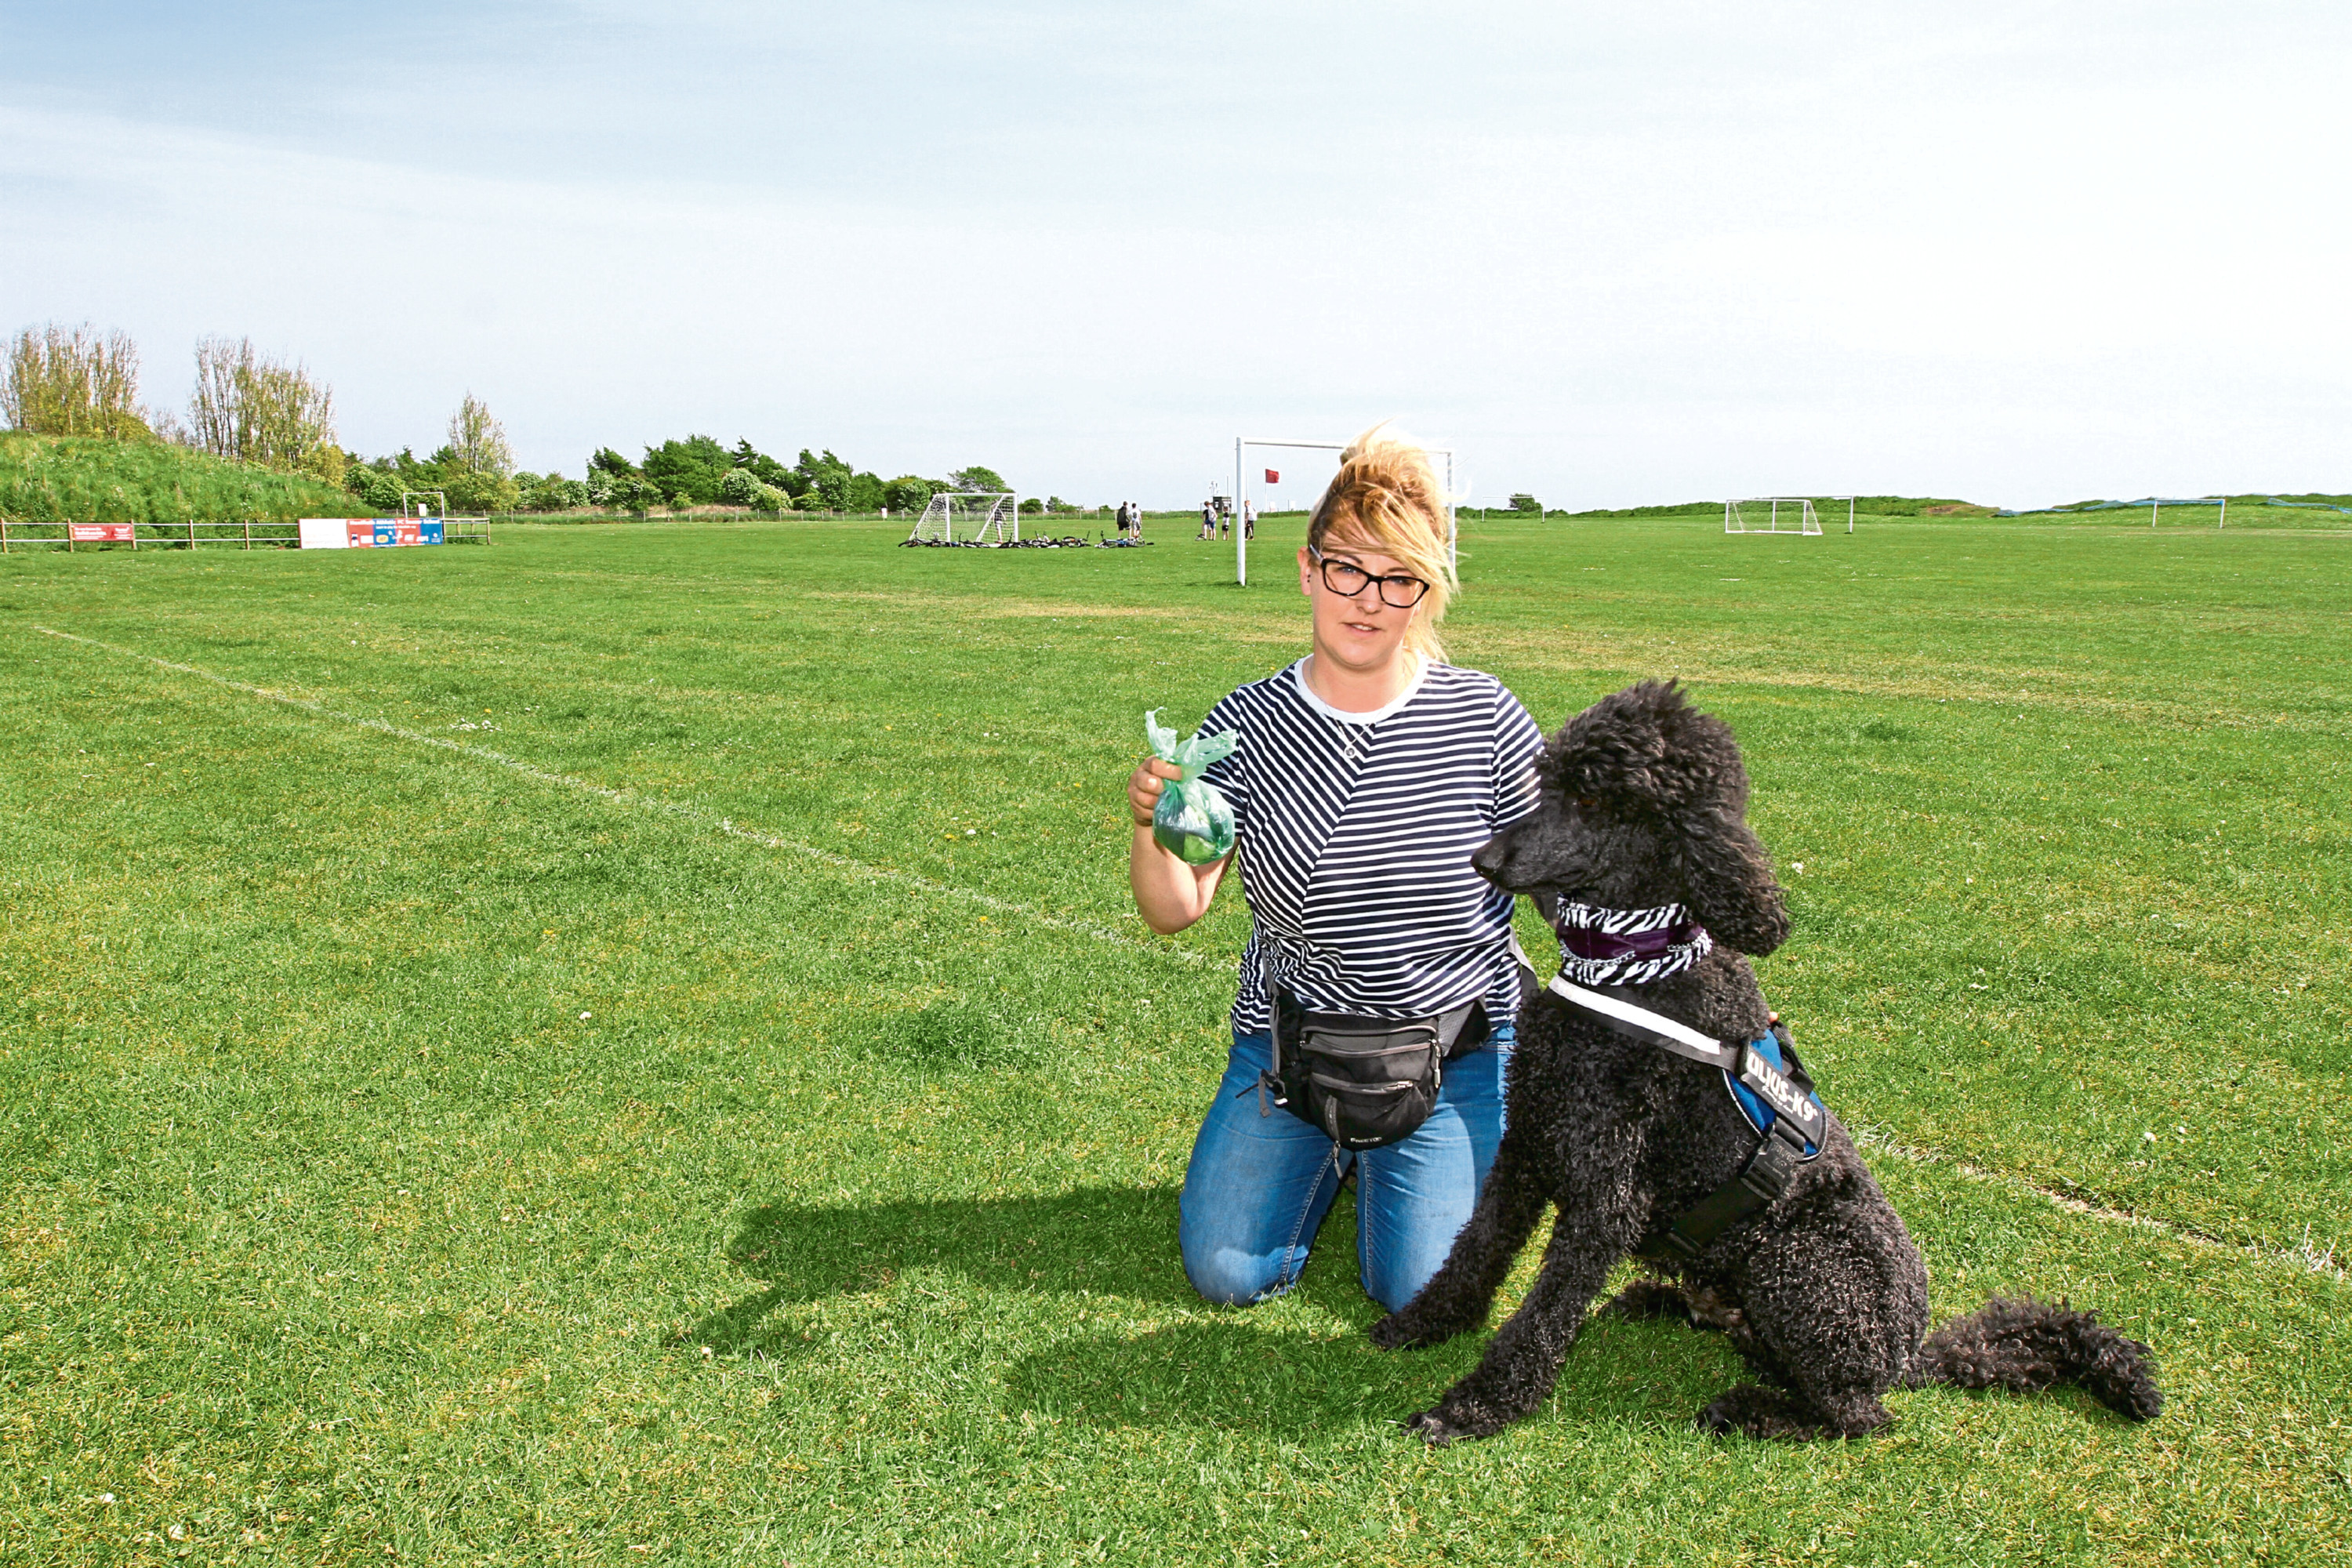 Professional dog walker Andrea Penny has criticised irresponsible owners who don't clean up after their pets.